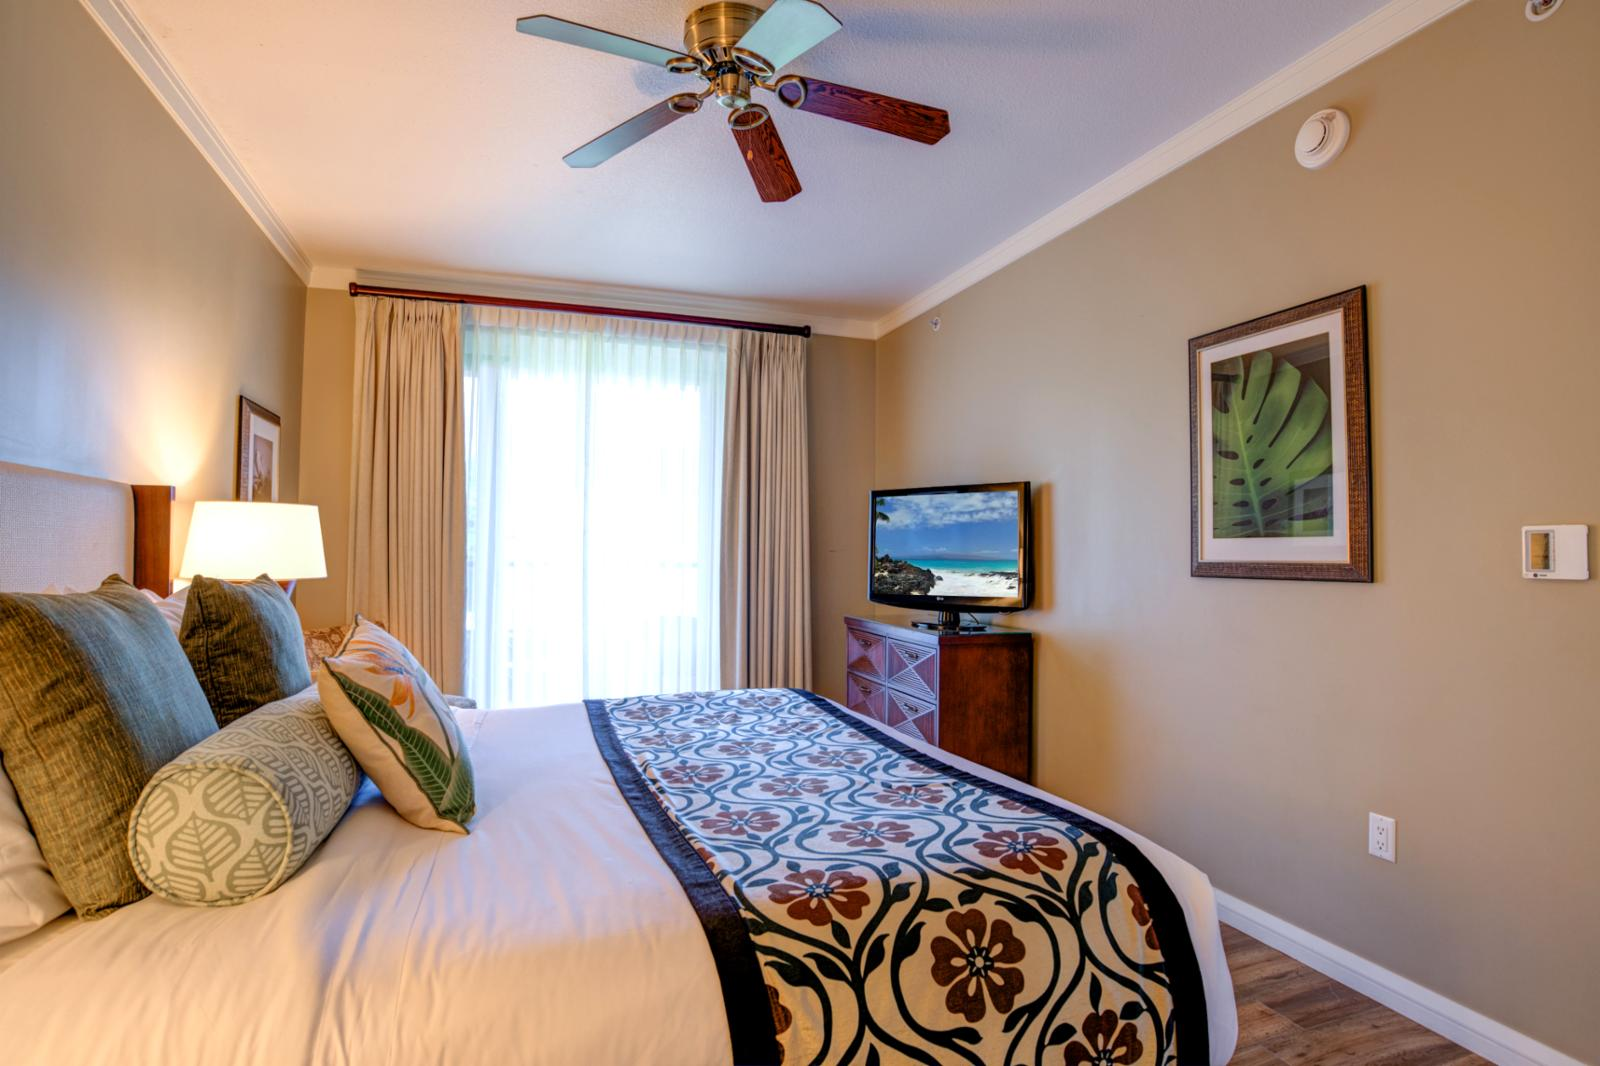 LARGE flatscreen television and in suite ceiling fan